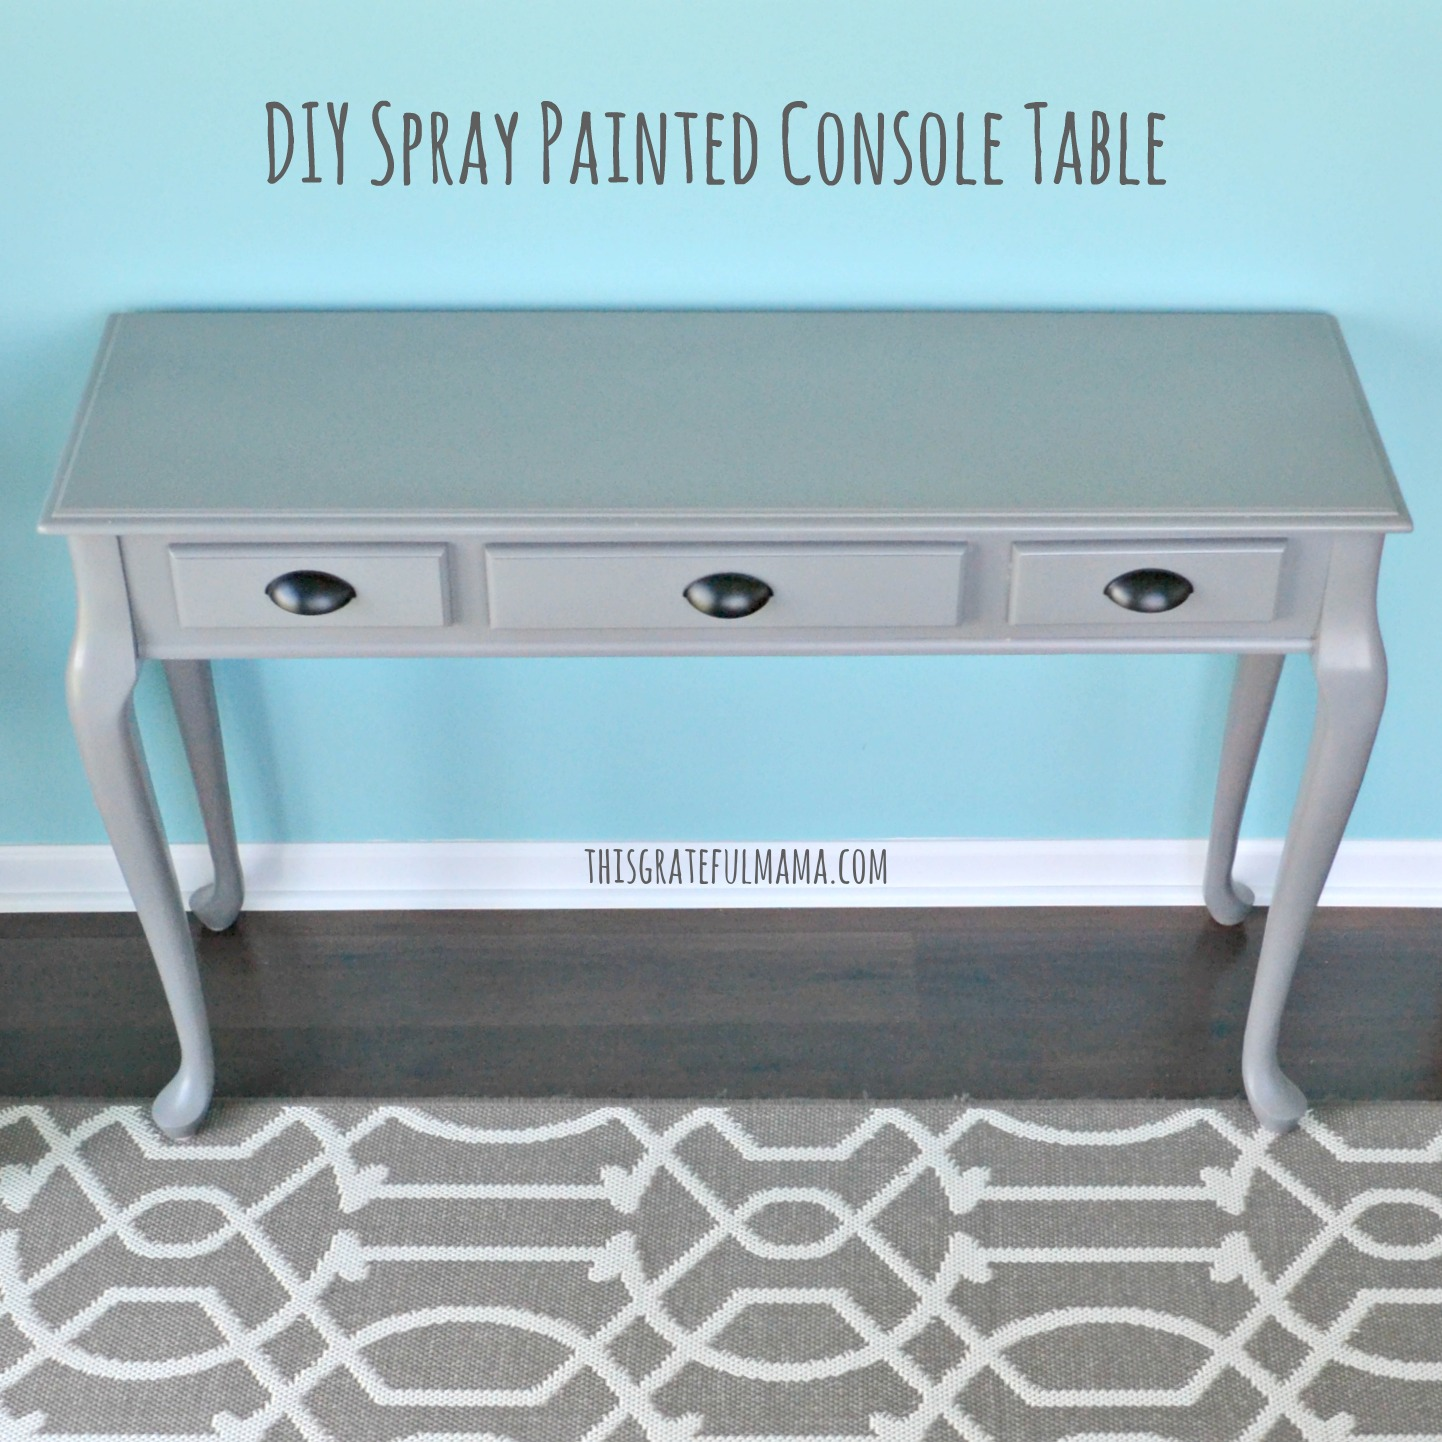 Diy spray painted console table how to update furniture with diy spray painted console table geotapseo Choice Image